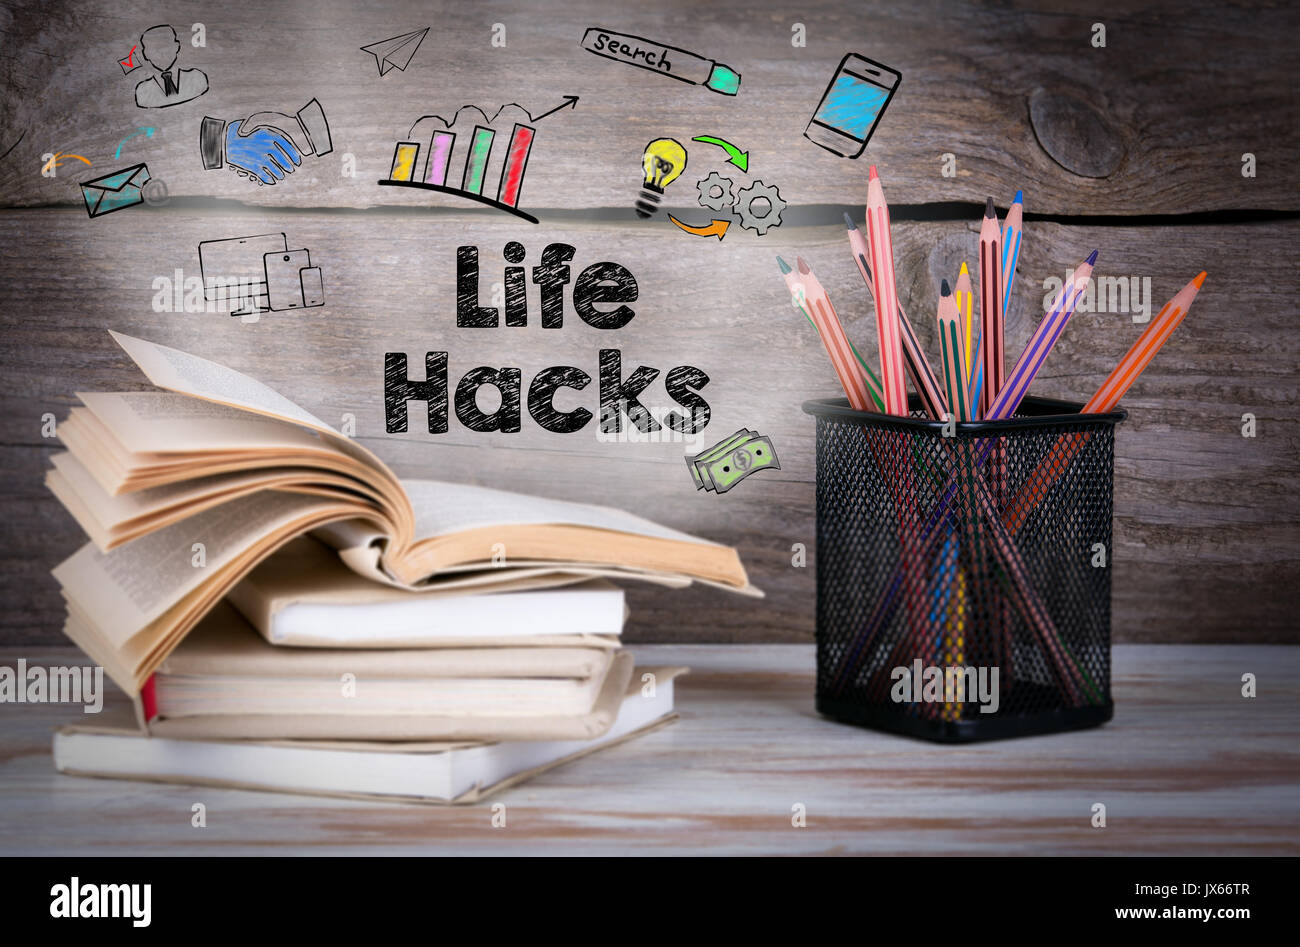 Life Hacks. Stack of books and pencils on the wooden table. - Stock Image